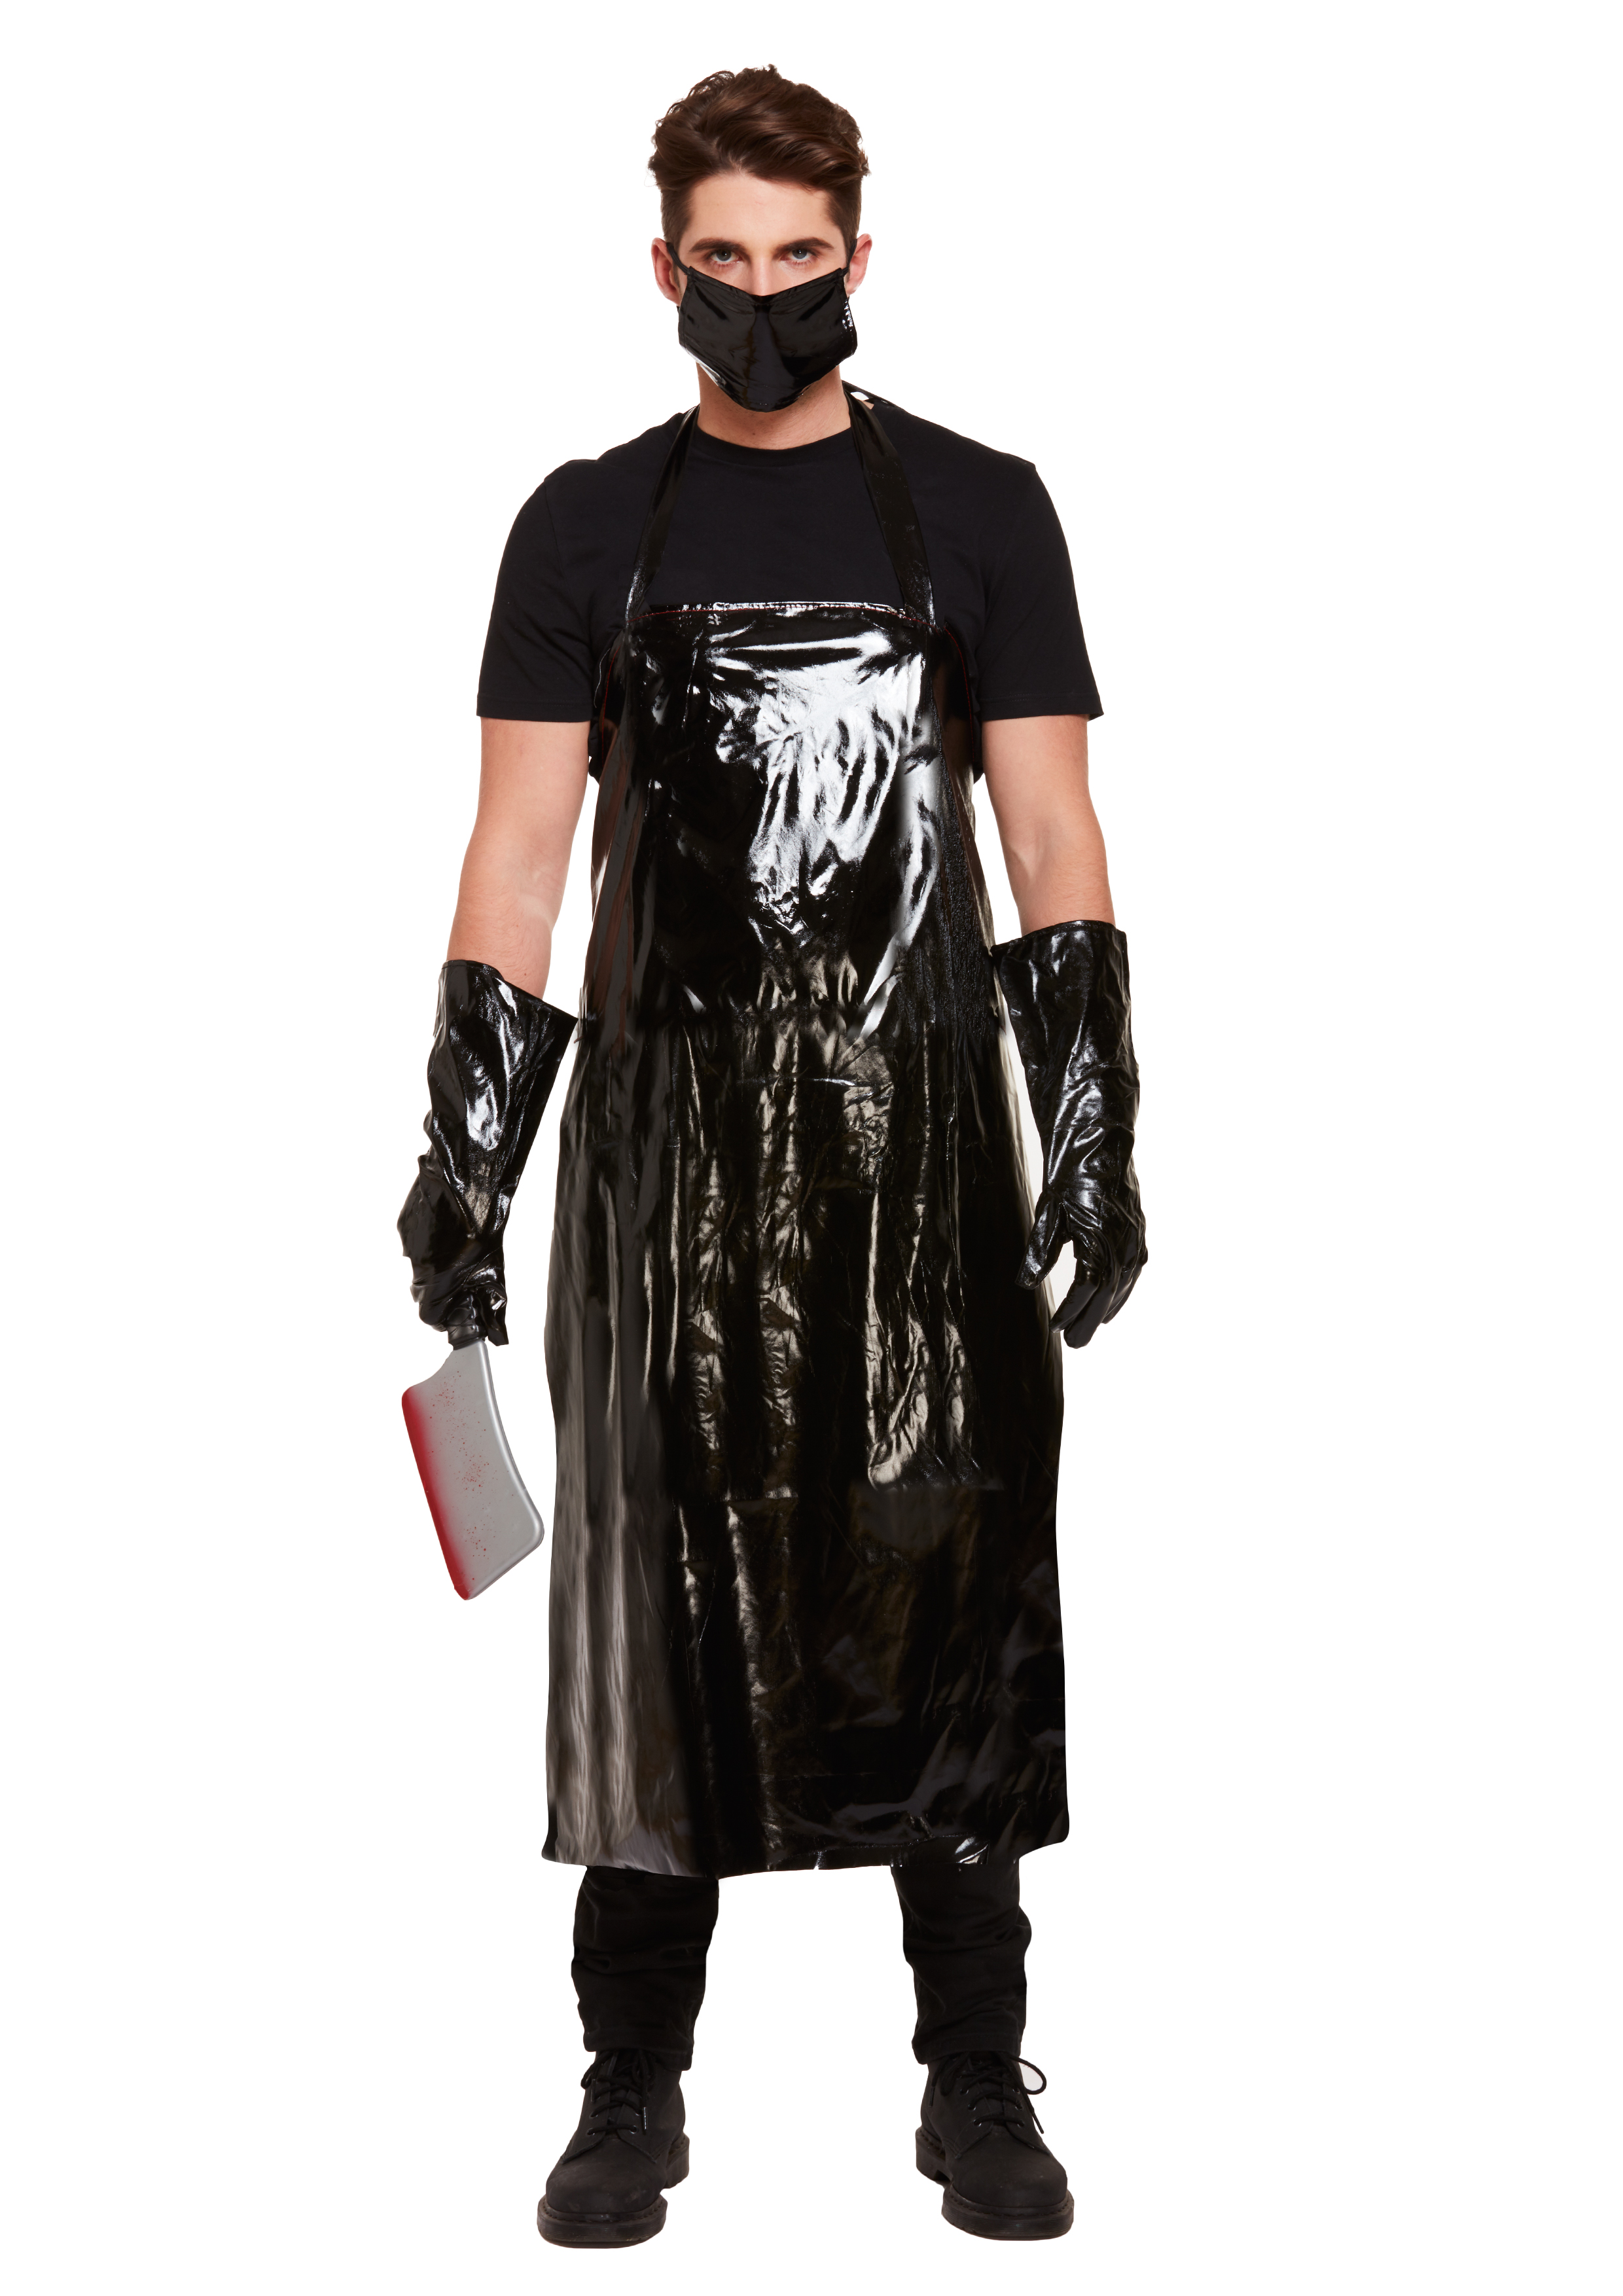 Scary Butcher Adults Costume All Mens Halloween Costumes